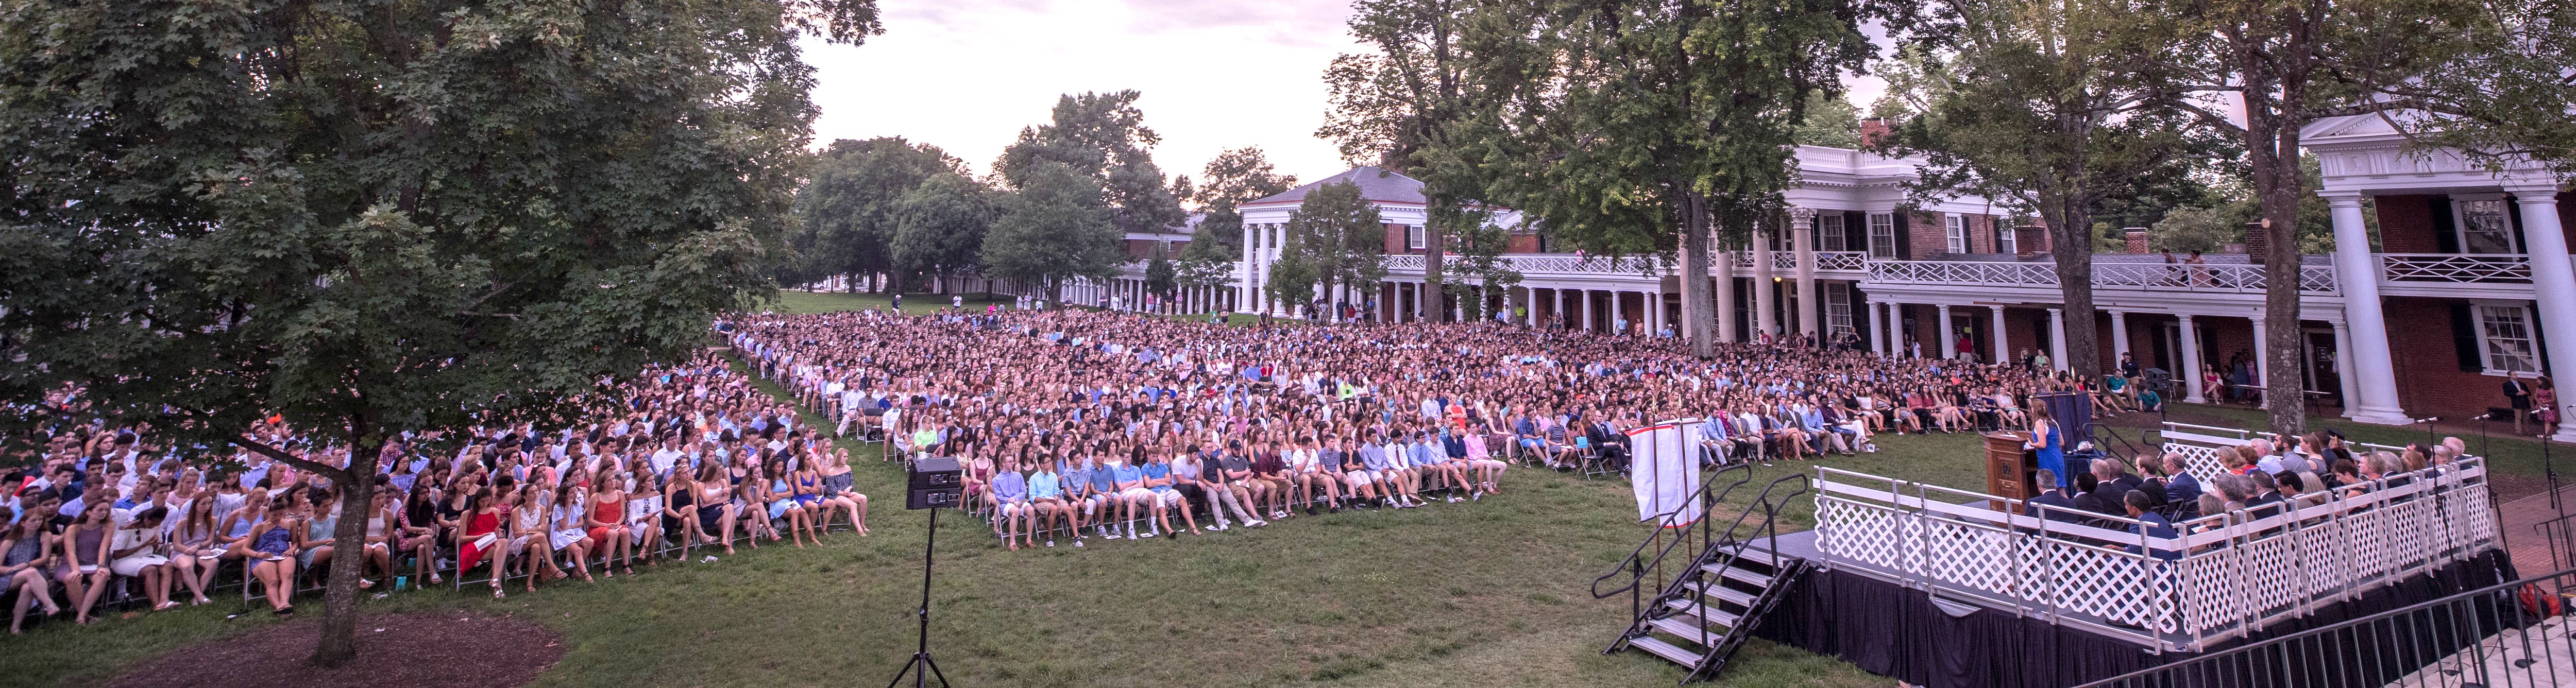 UVA Opening Convocation crowd of students